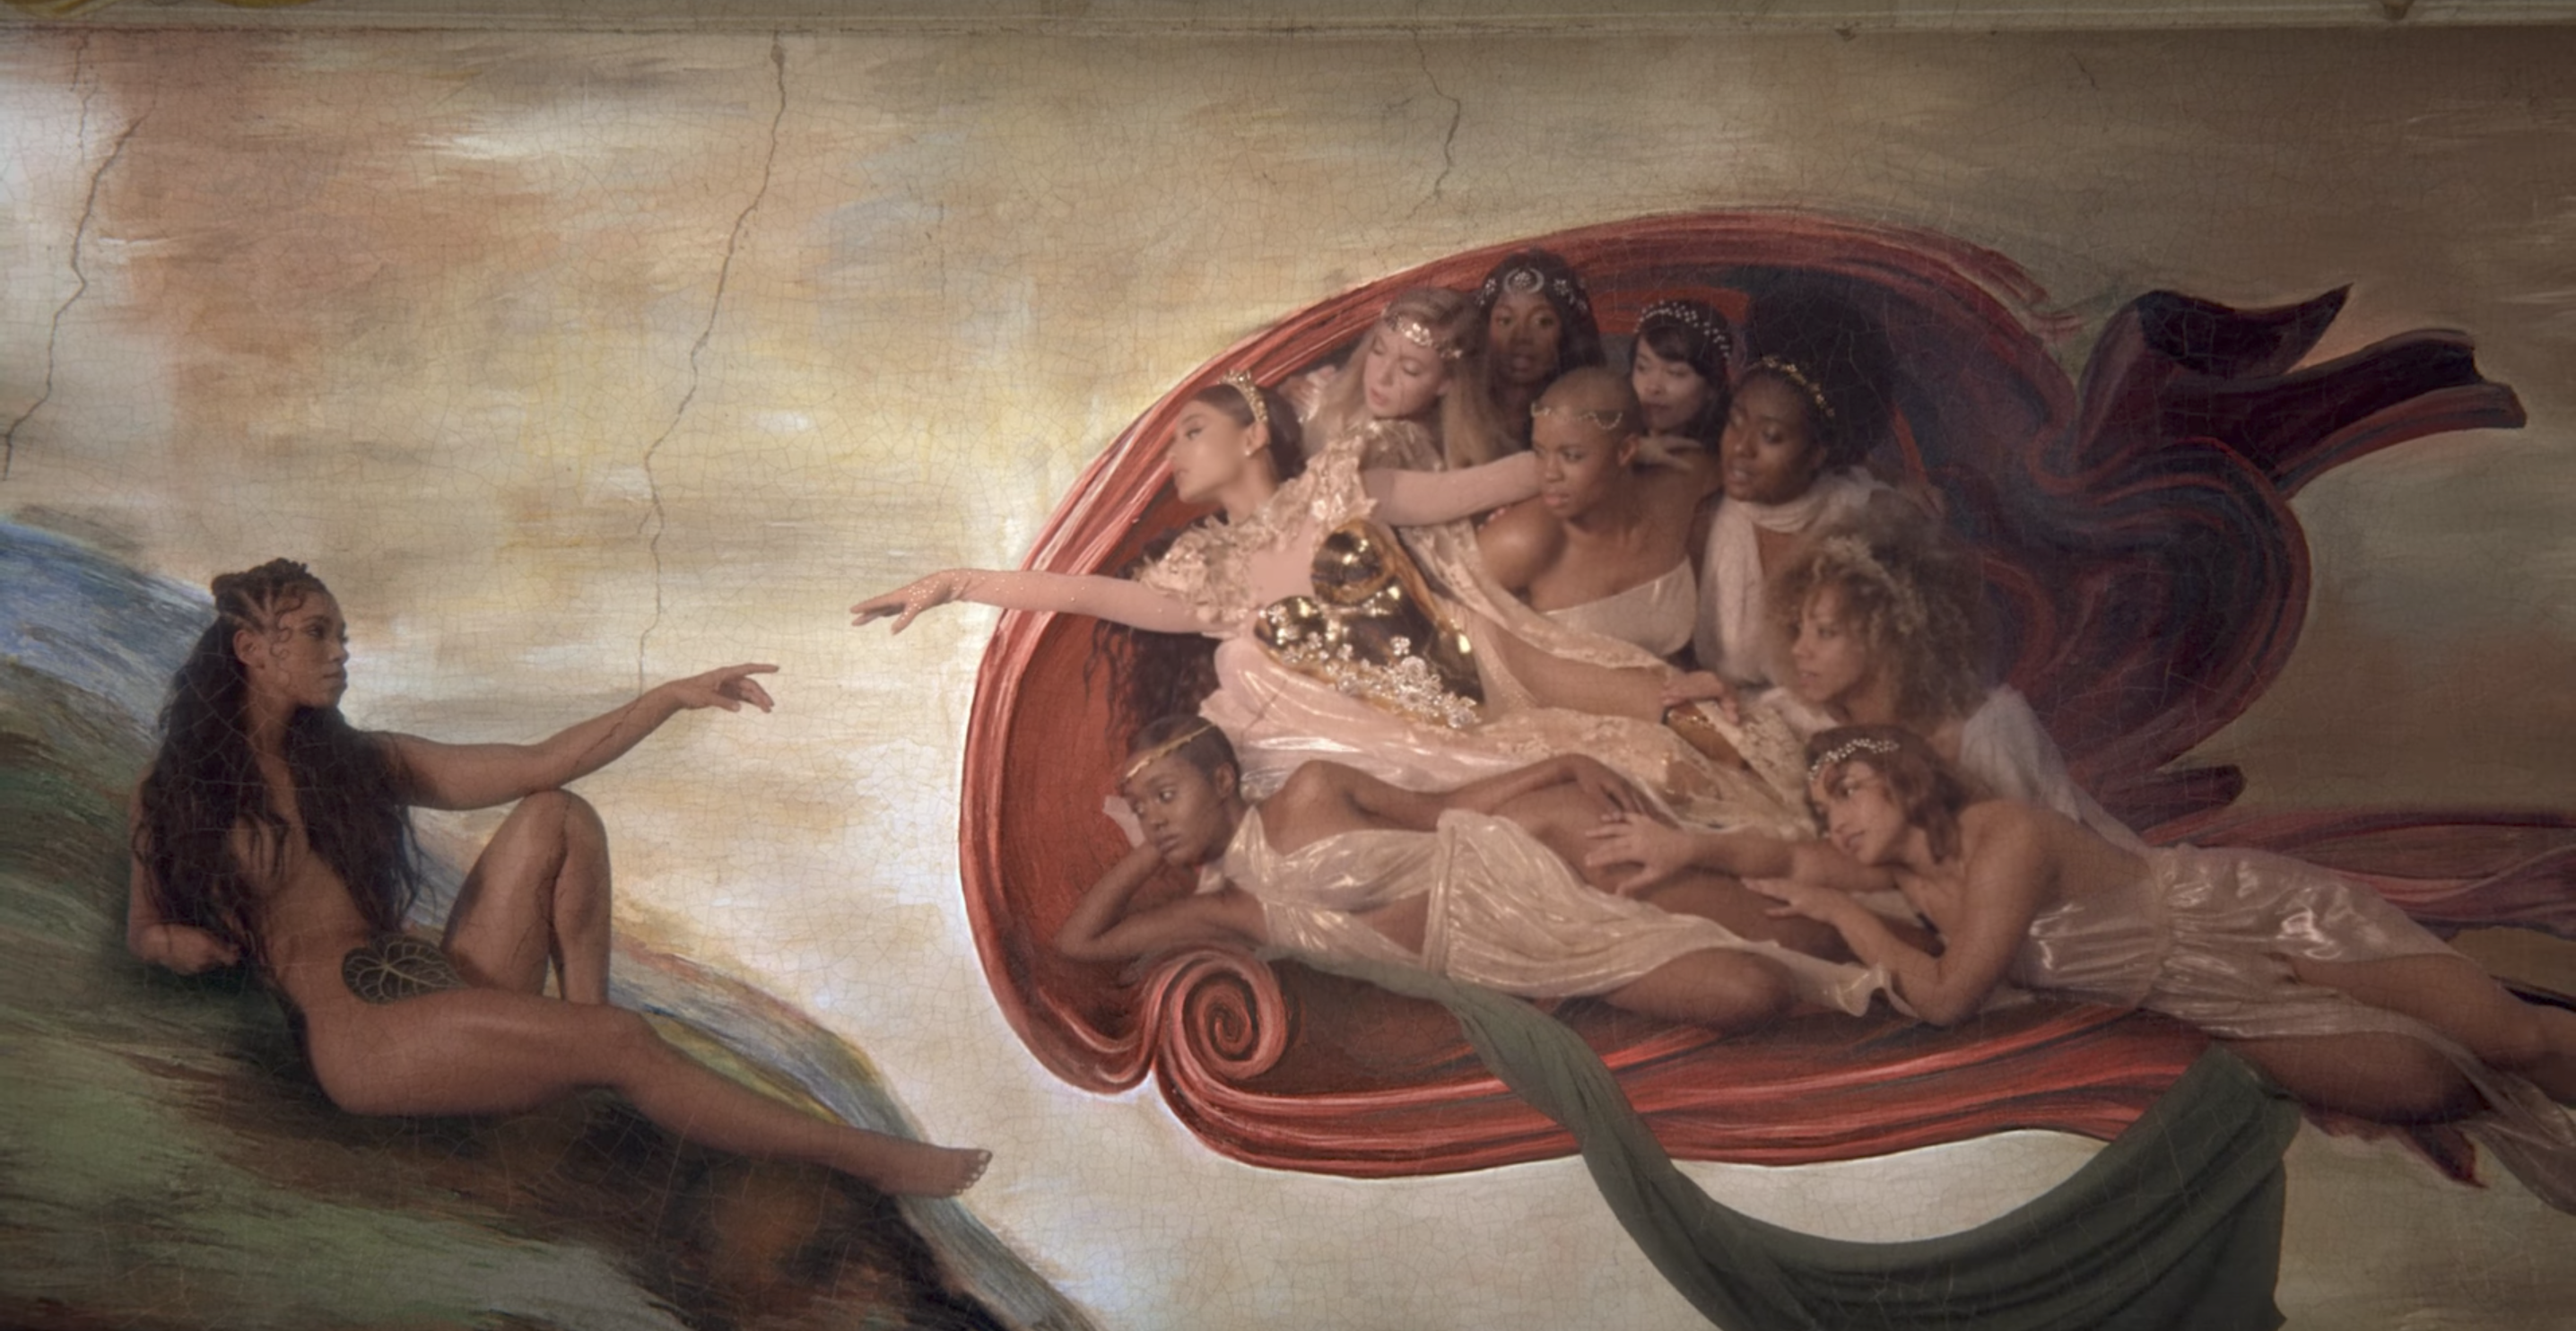 Ariana Grande Drops God is a Woman Music Video — God is a Woman